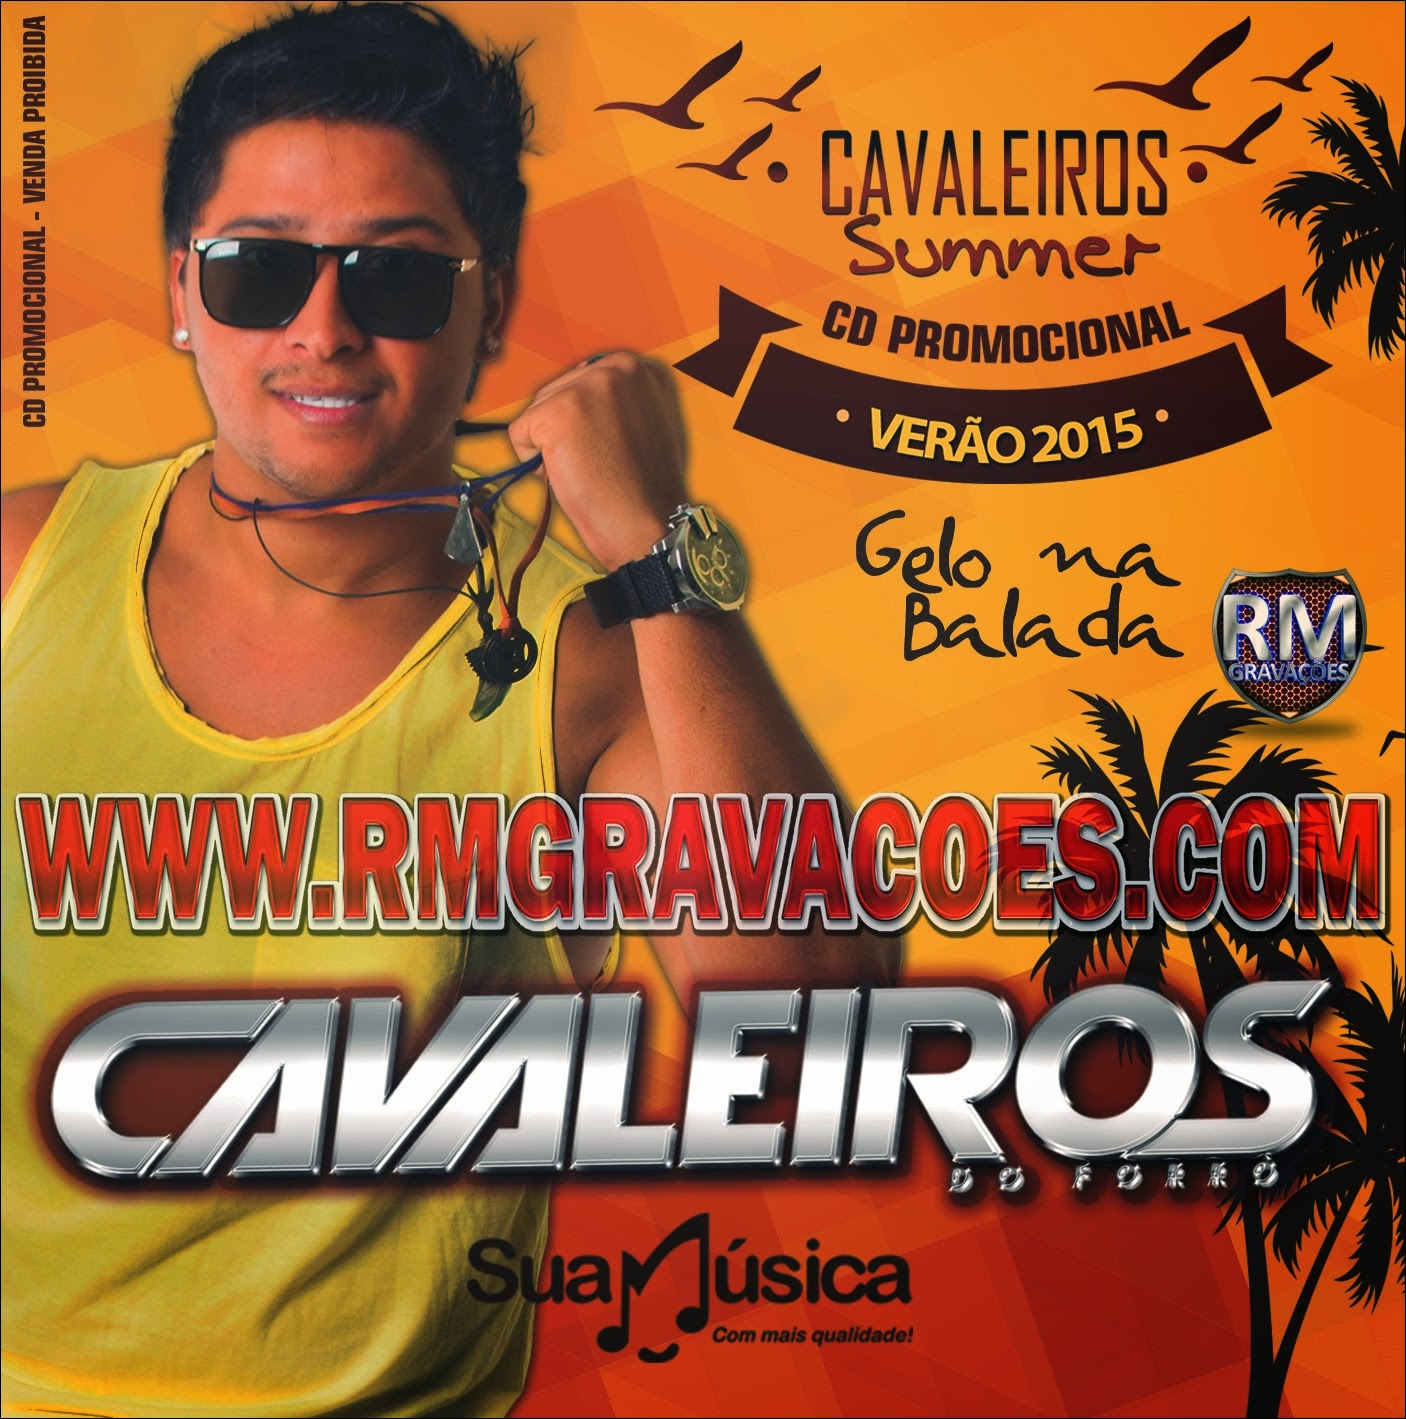 cd cavaleiros do forro promocional 2014